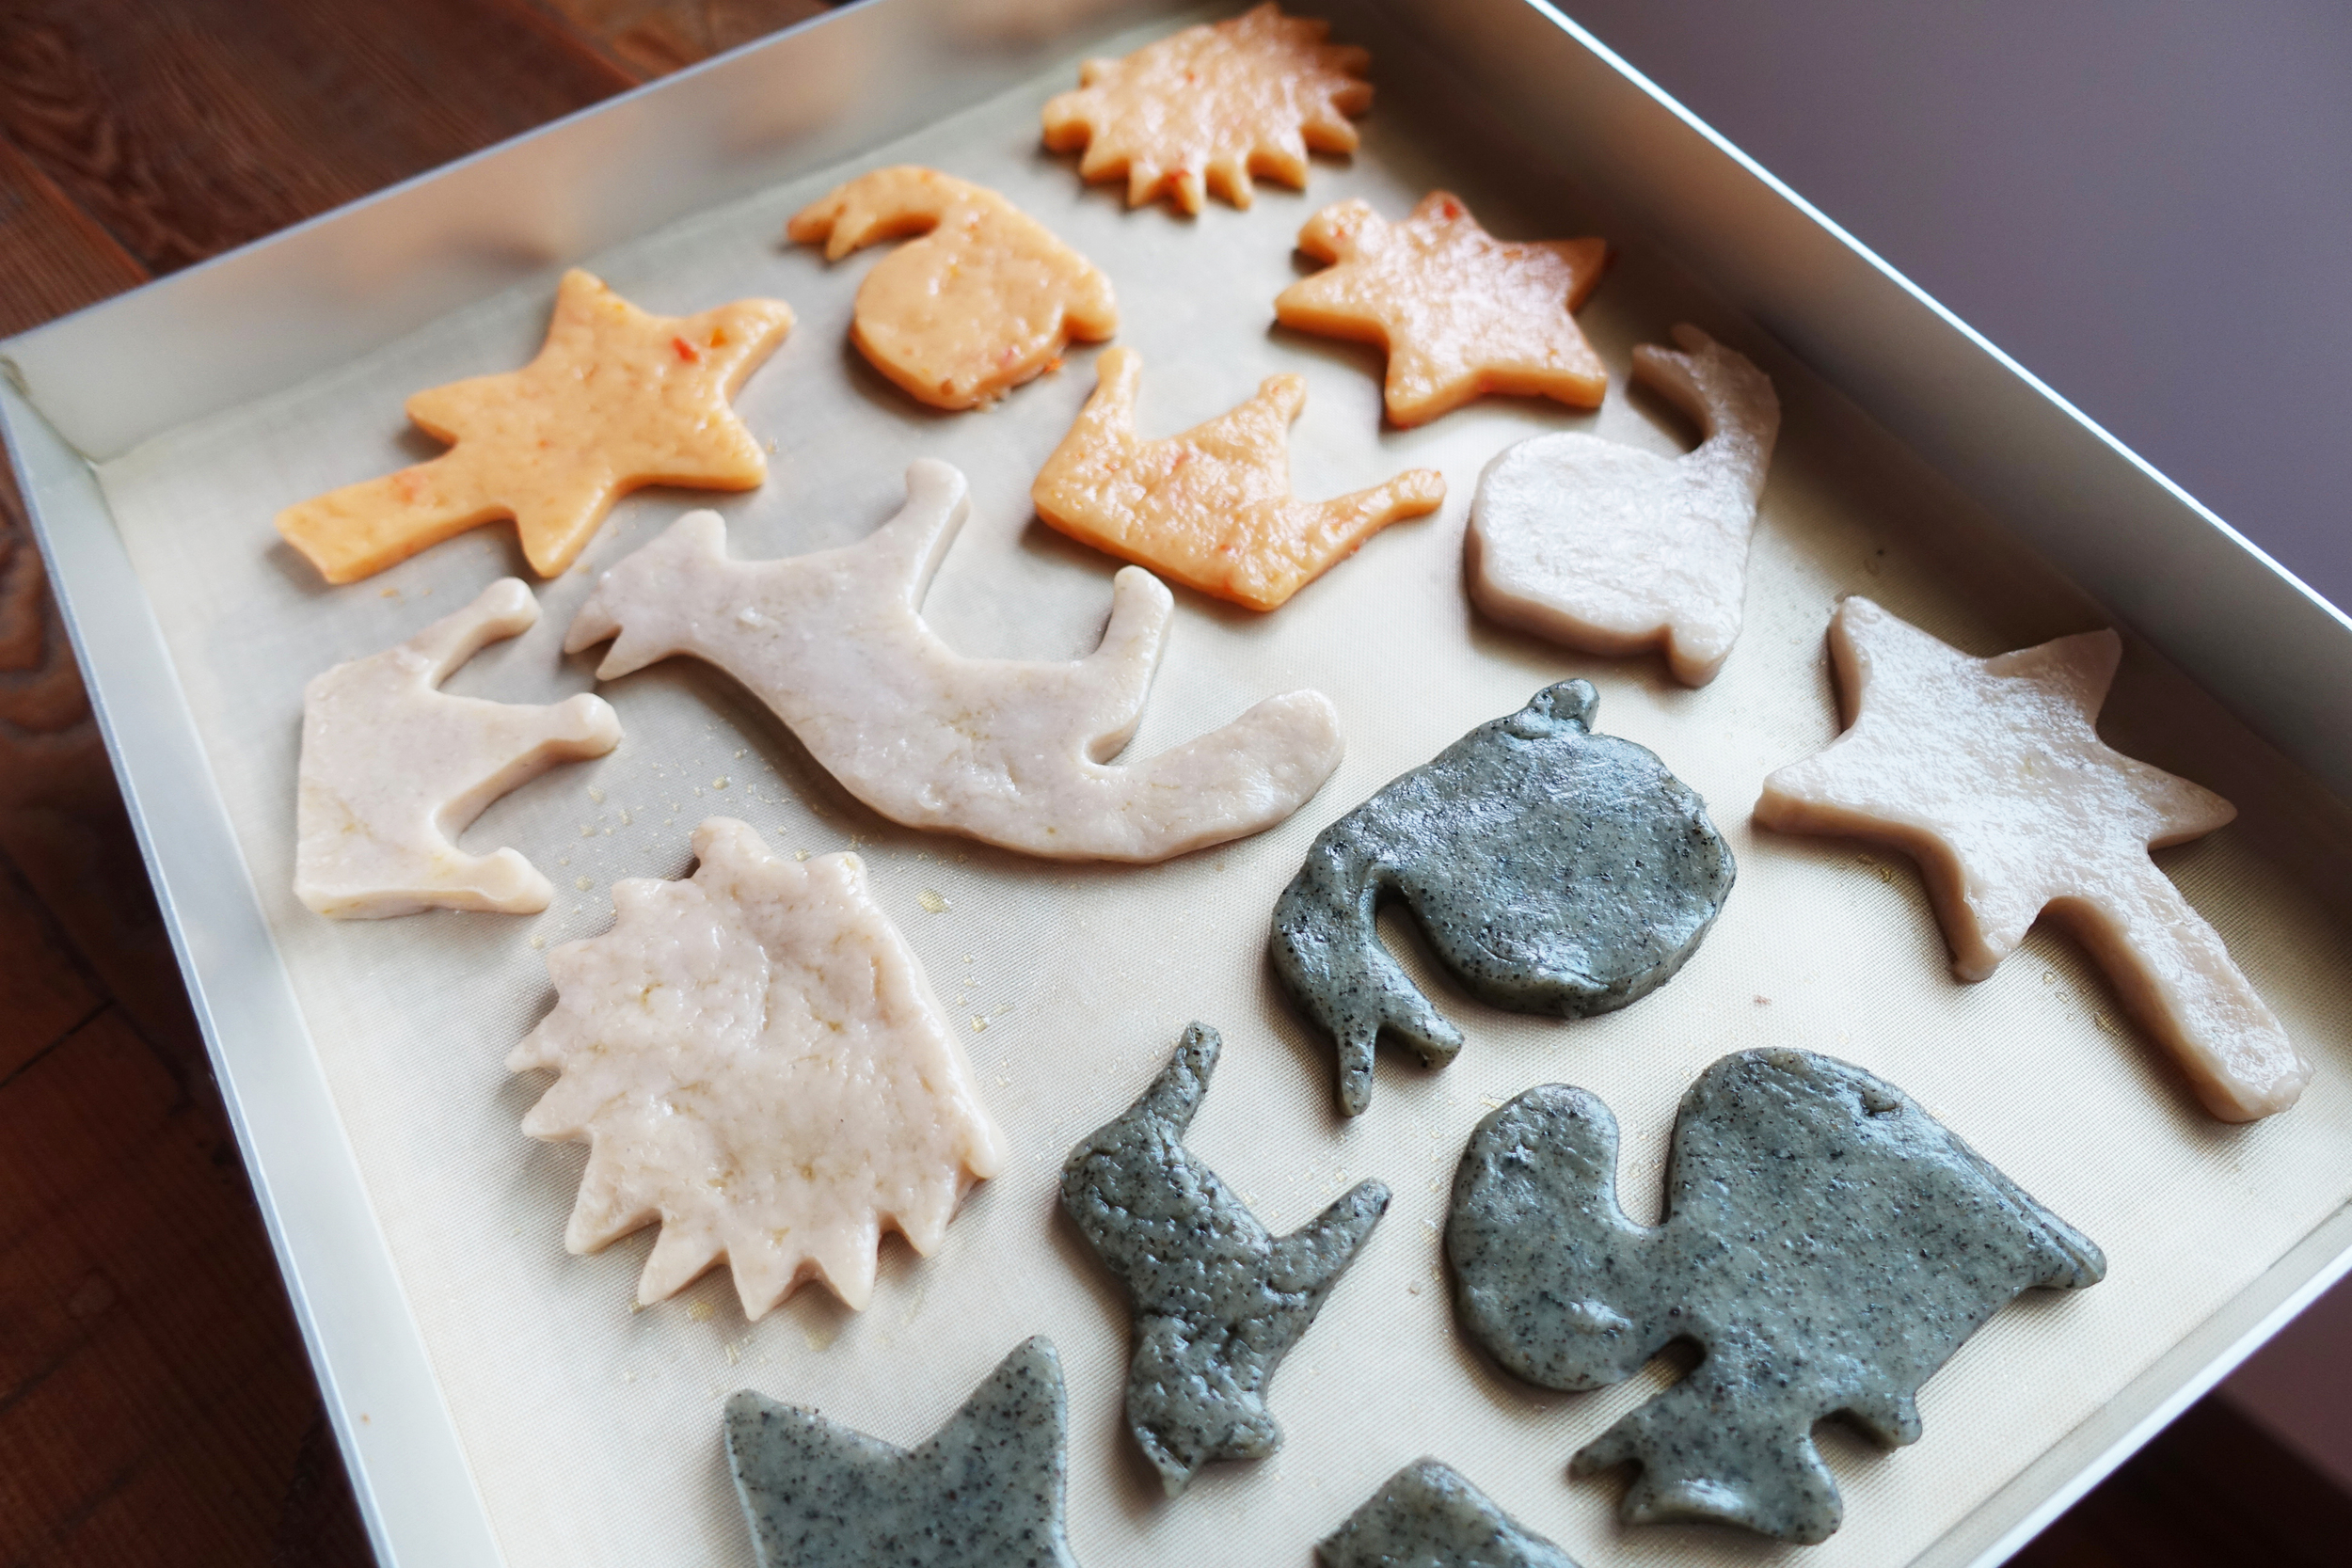 Animal cookie experiment